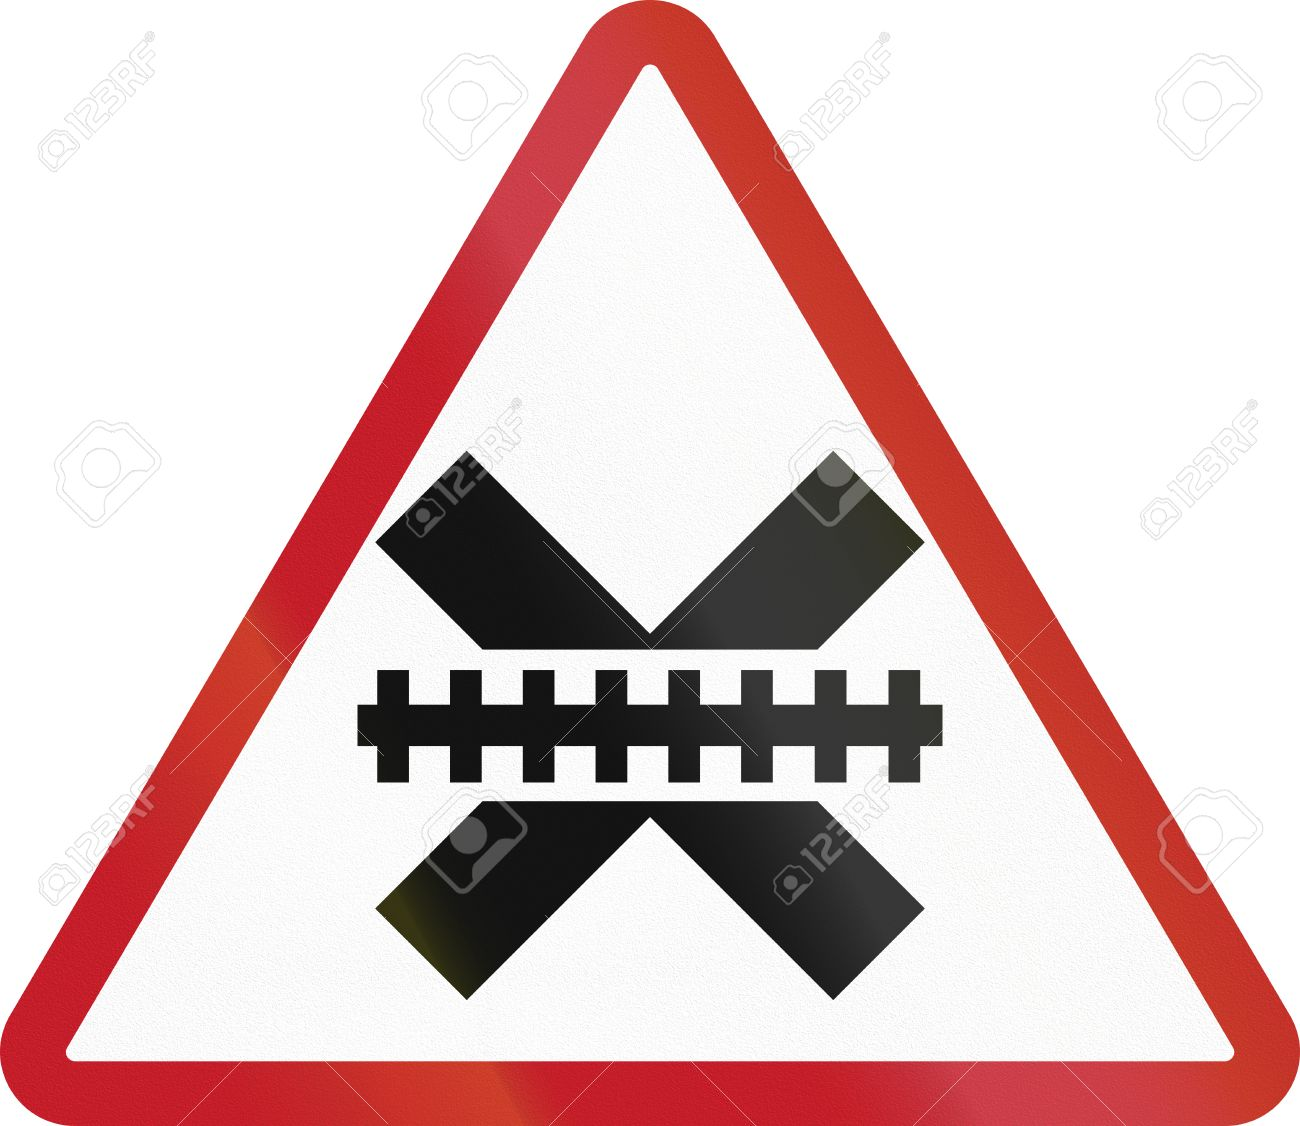 Road sign in the philippines railway crossing advance warning road sign in the philippines railway crossing advance warning for crossings without signal control buycottarizona Image collections